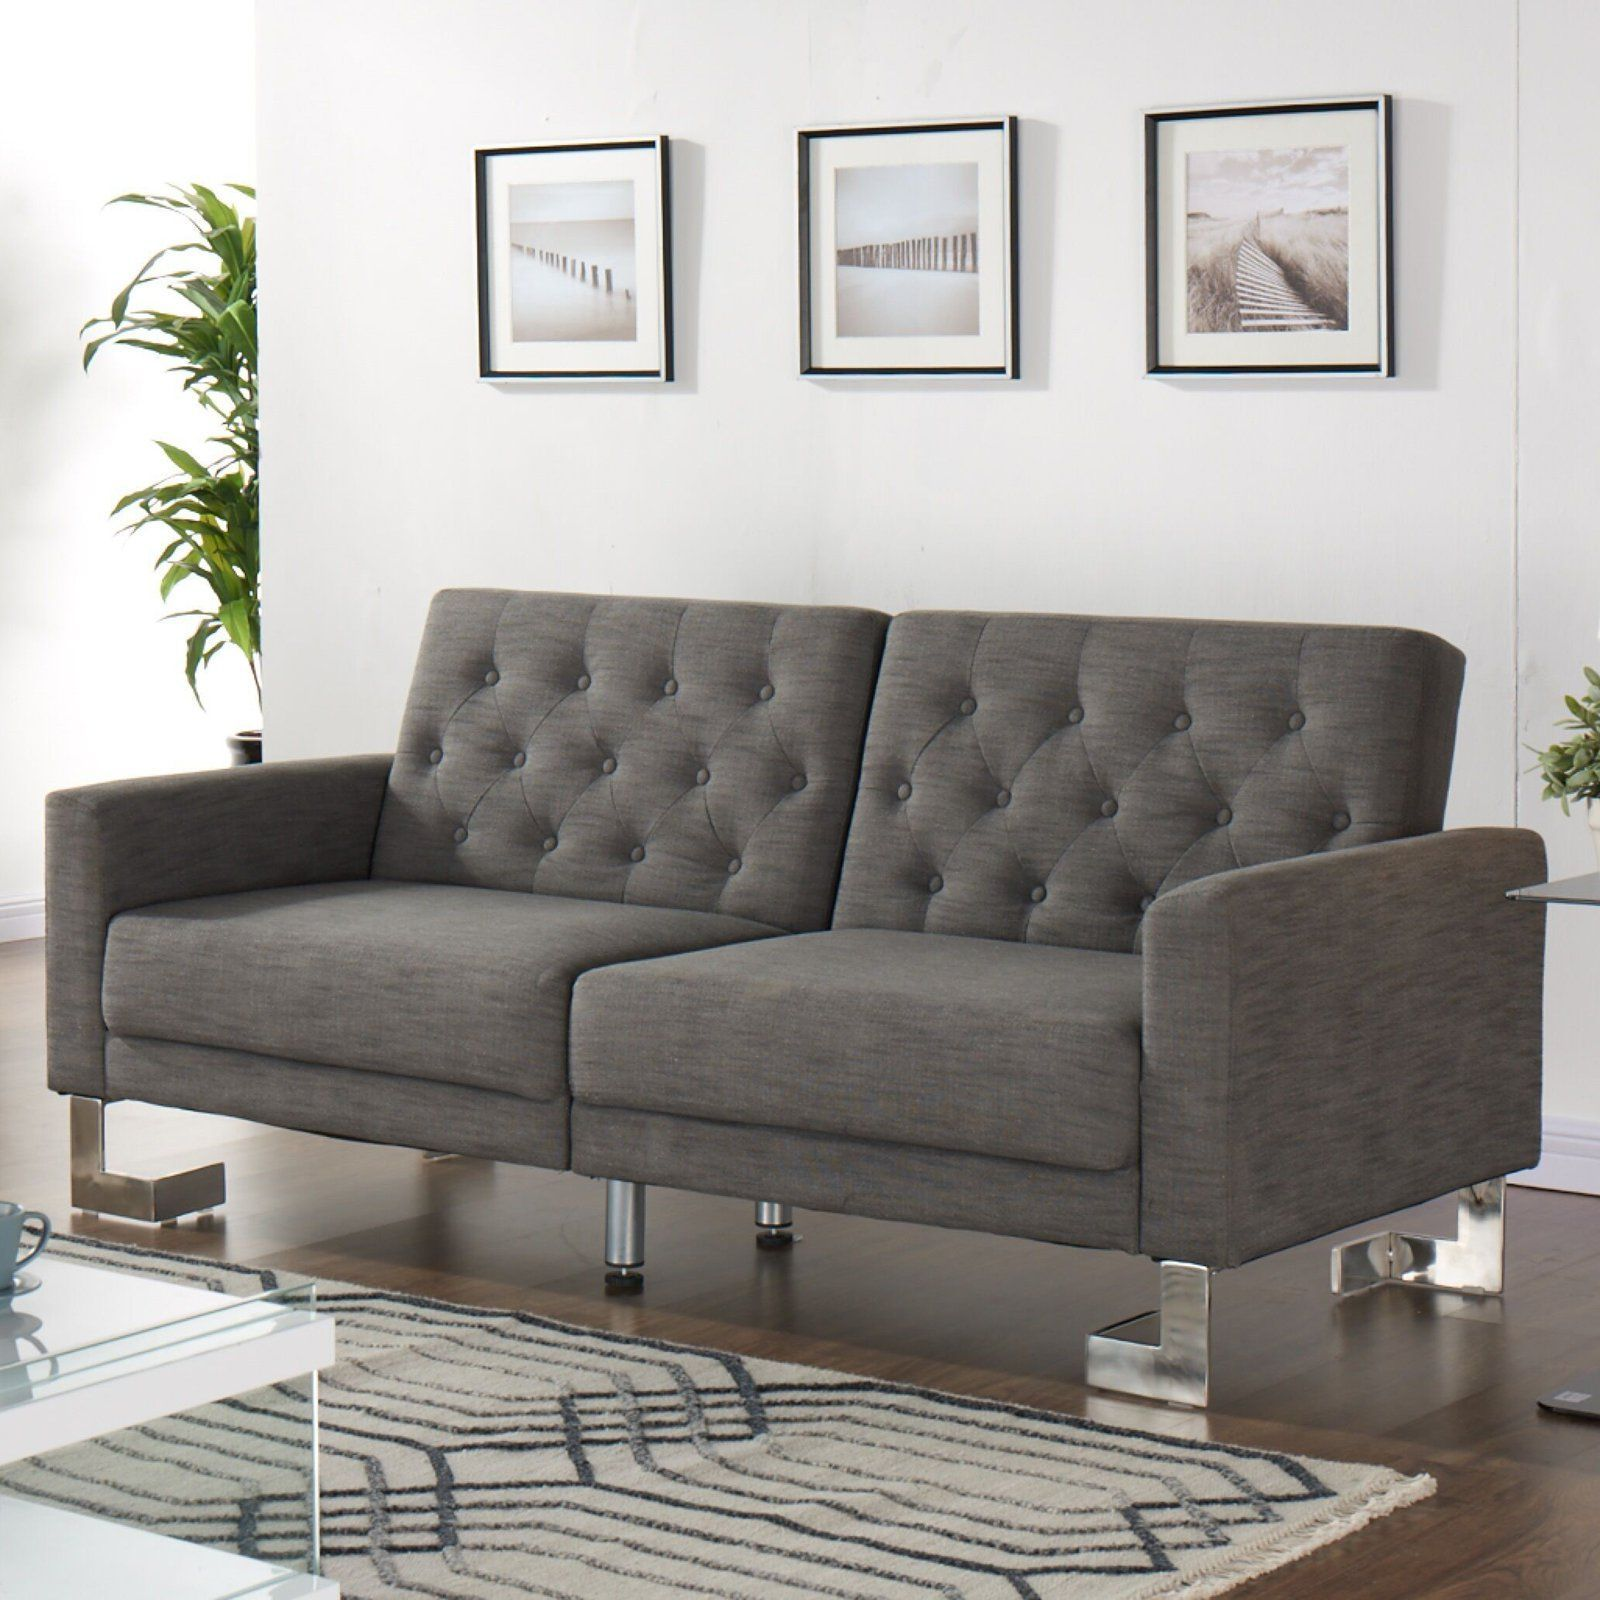 Casabianca Furniture MARINO Collection Gray Fabric Sofa Bed by